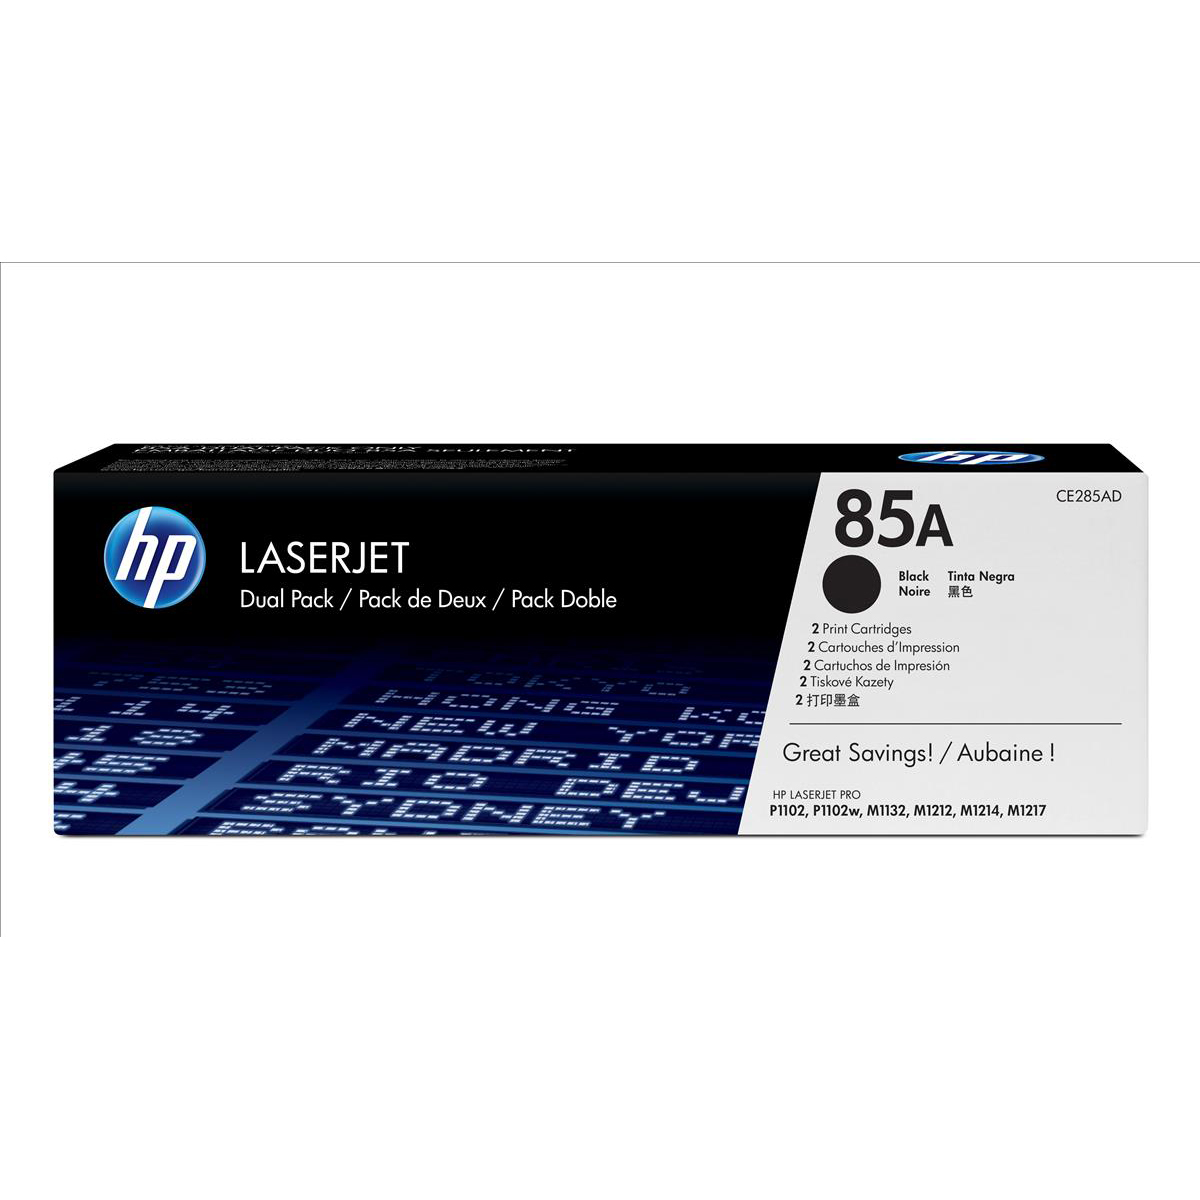 HP 85A Laser Toner Cartridge Page Life 1600pp Black Ref CE285AD Pack 2